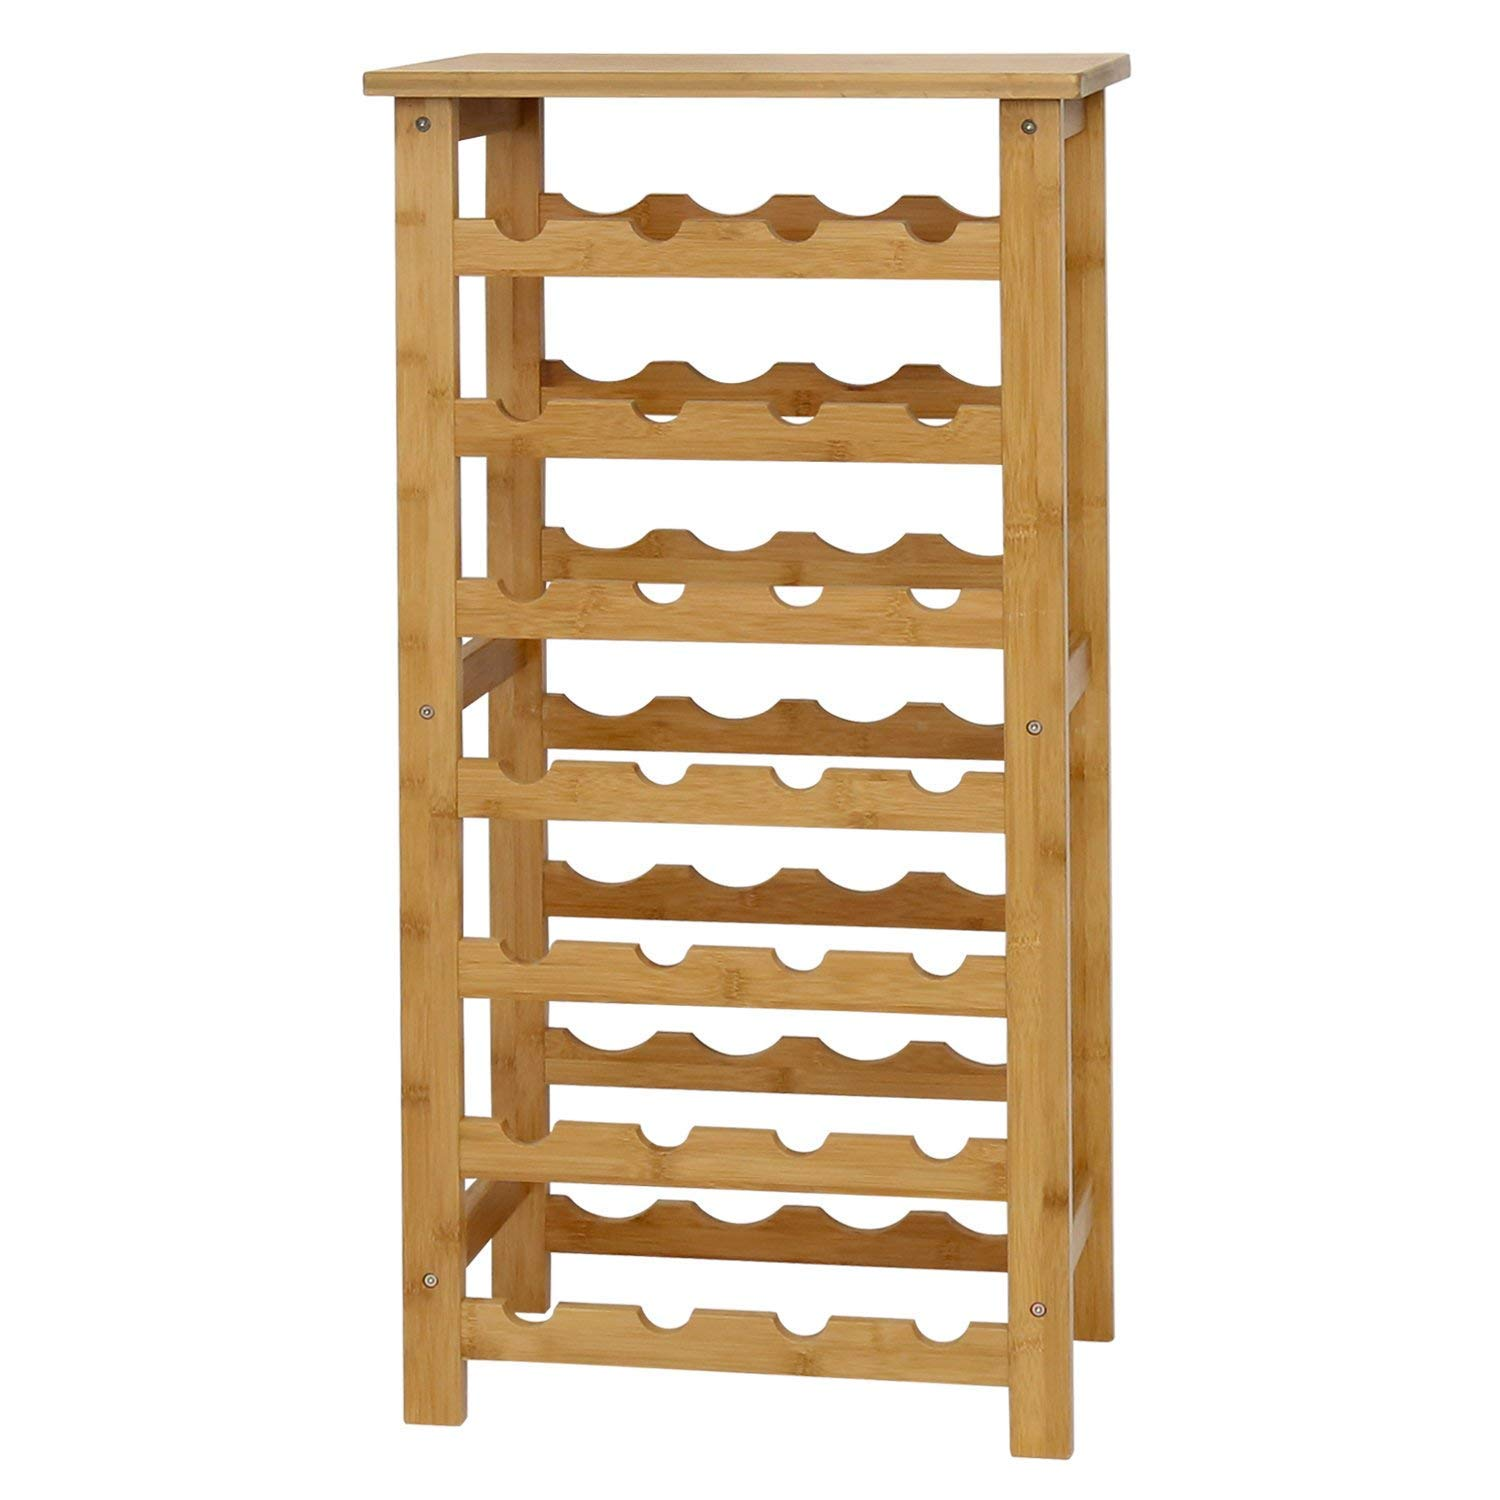 Peach Tree Bamboo Wine Rack Countertop Bottle Storage Containers, 12-Bottle 2-Tiers GB